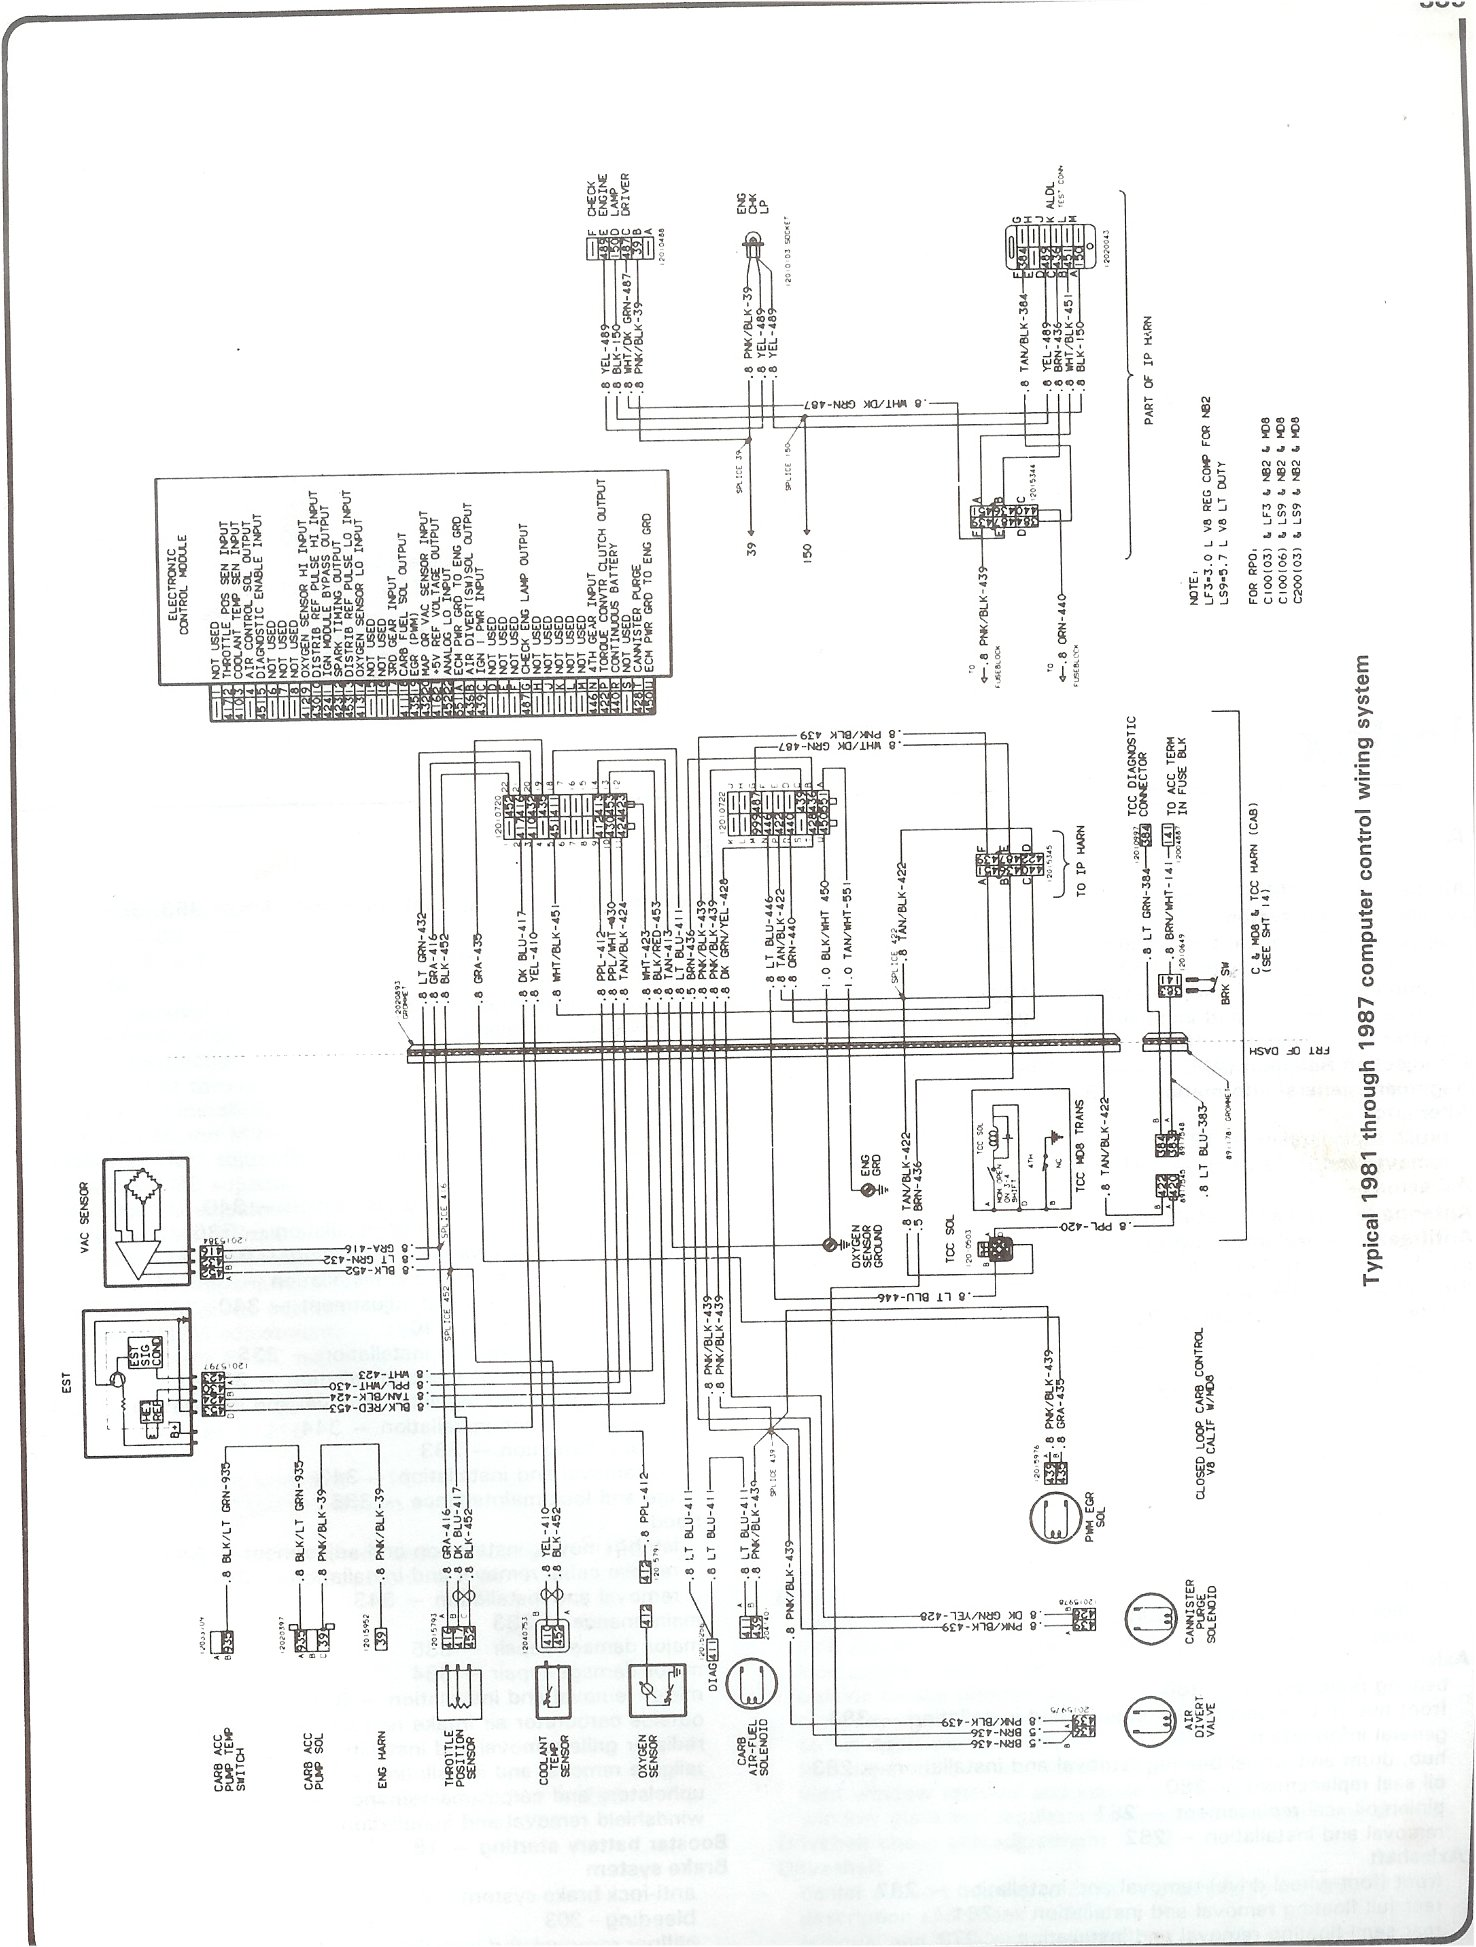 81 87_computer_control_wiring complete 73 87 wiring diagrams wiring diagram for 1970 chevy c10 at gsmx.co